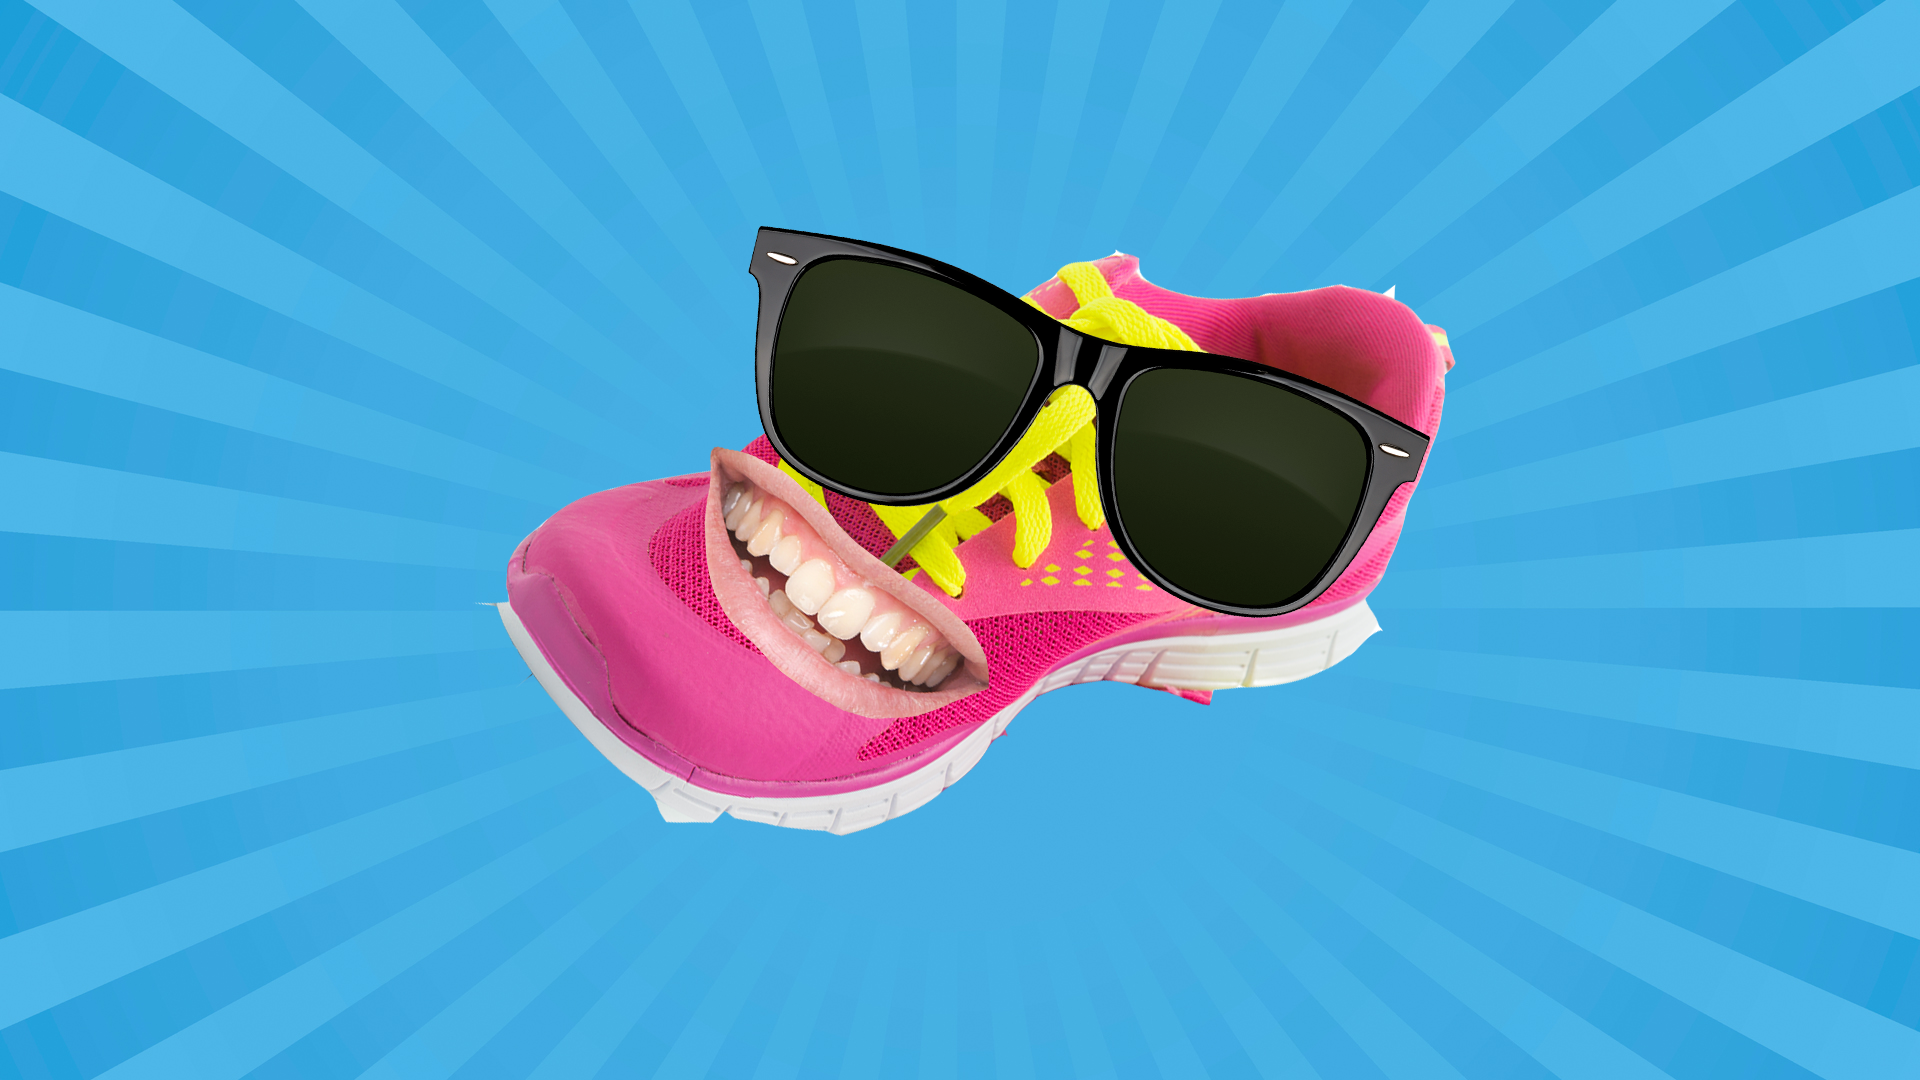 A grinning pink trainer